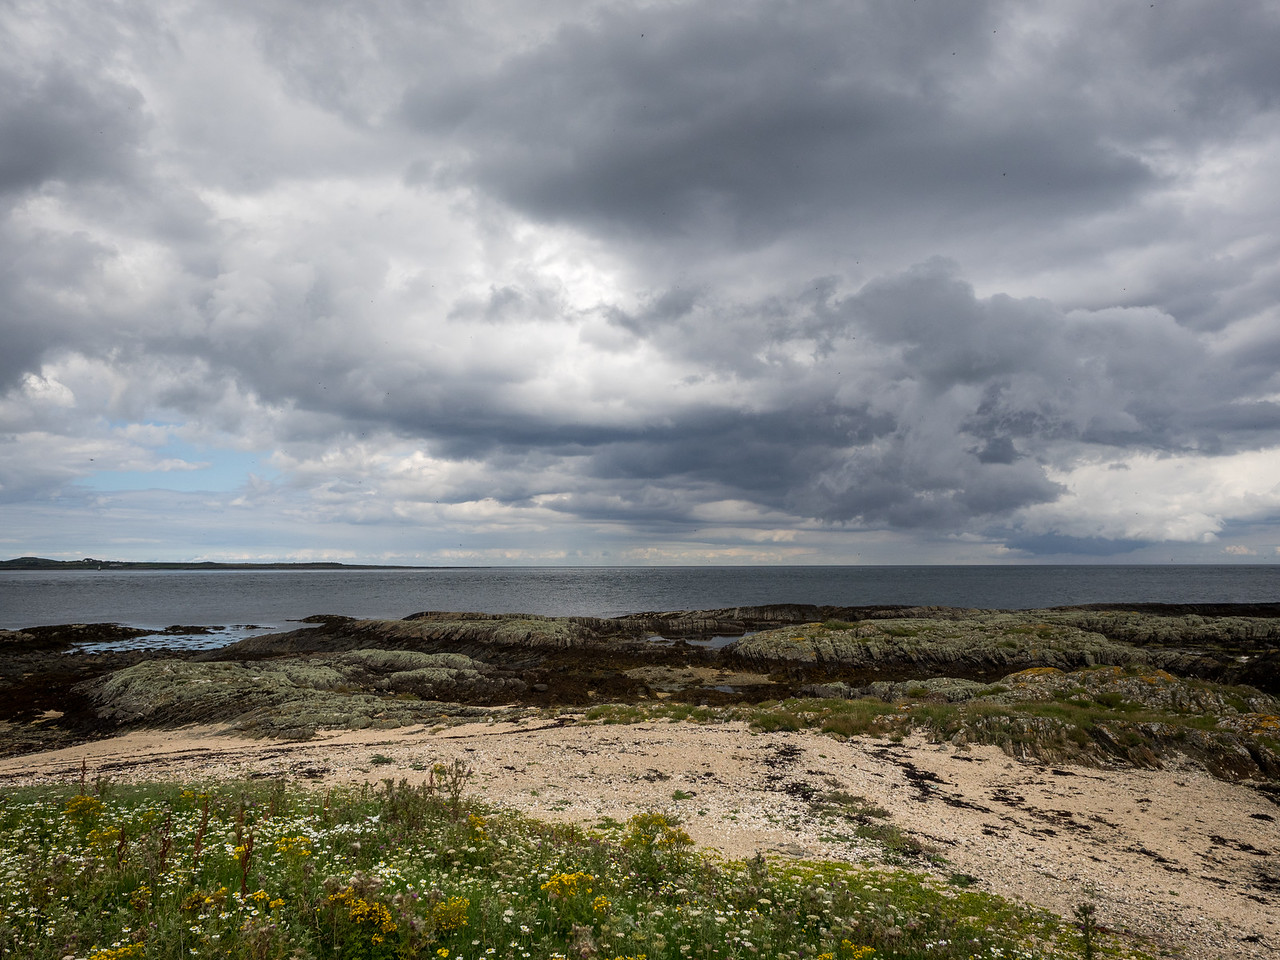 Brooding skies - we managed to miss the rain.